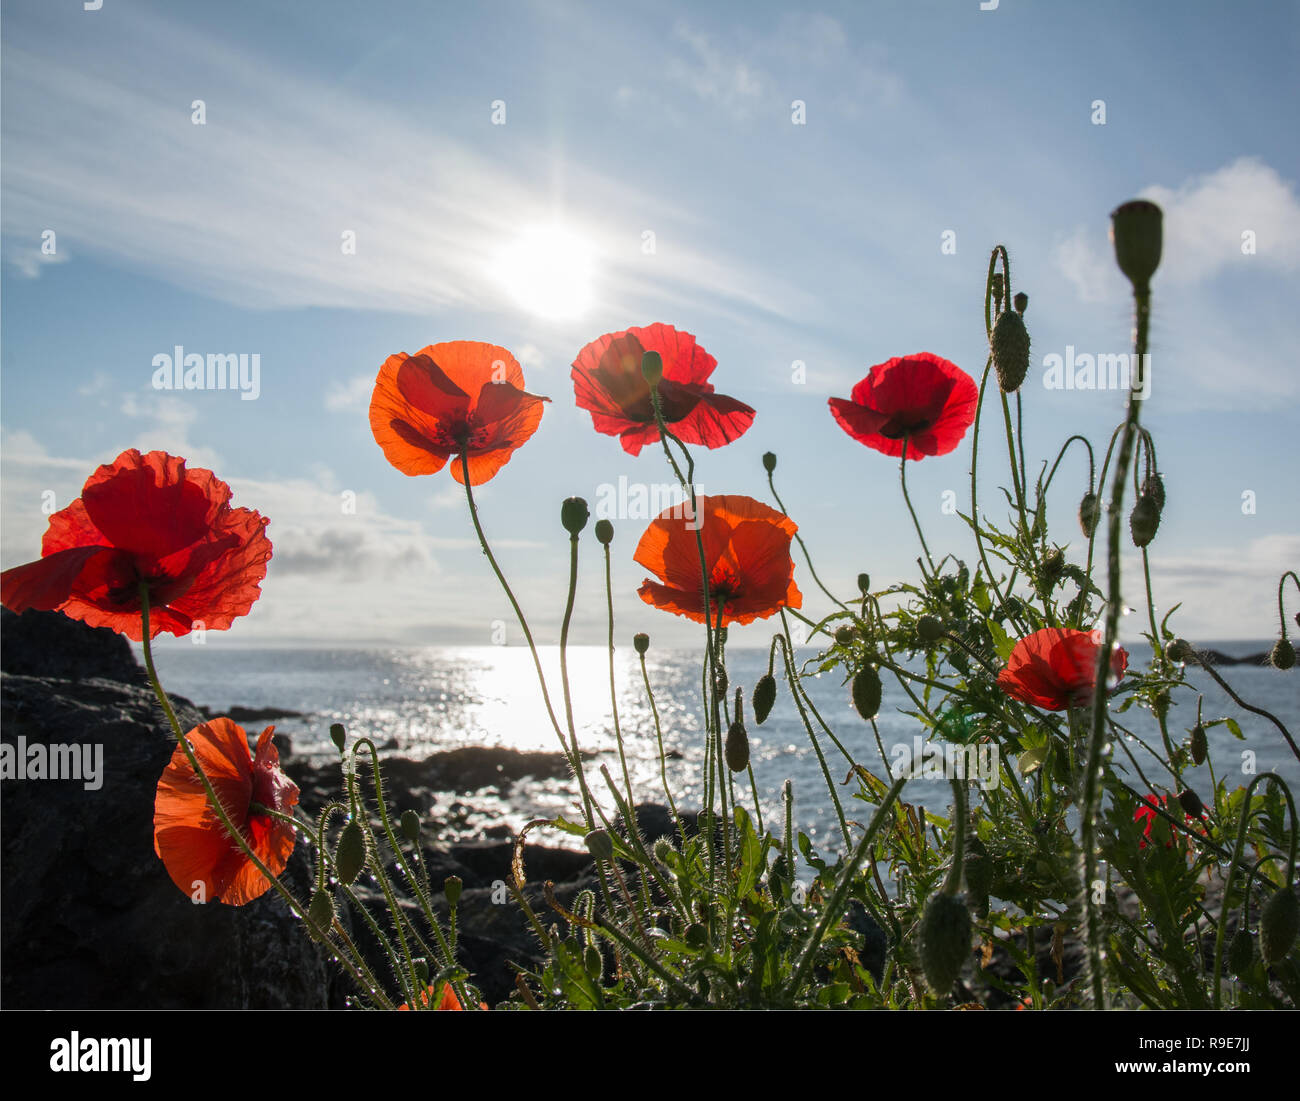 Close of red poppies against blue sky and sea in the sunshine - Stock Image